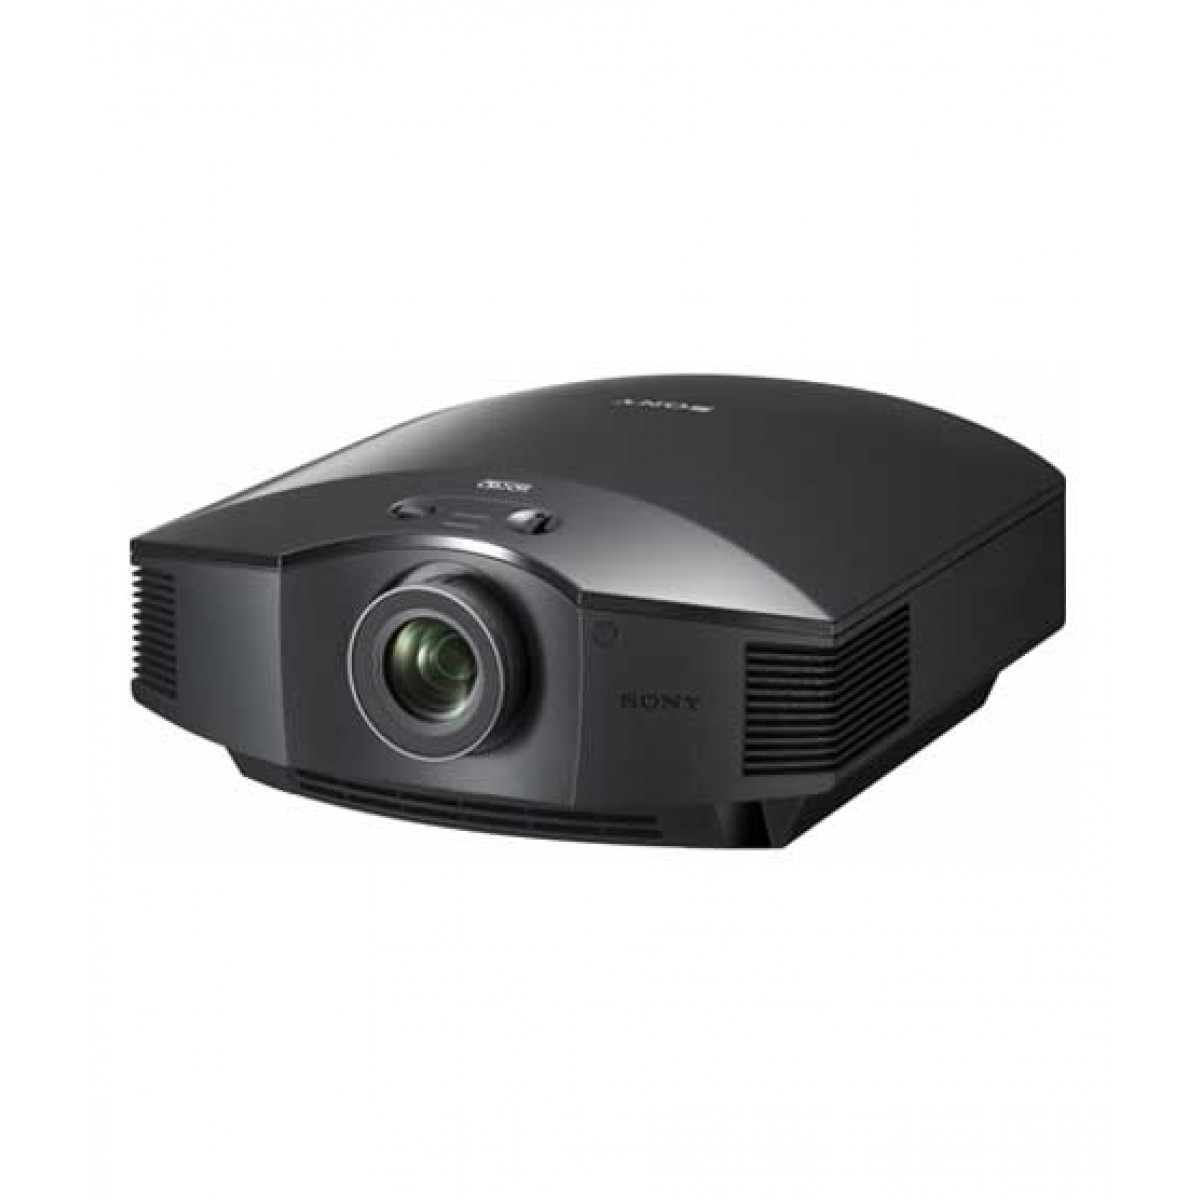 Sony 3D Home Theater Projector (VPL-HW40ES)